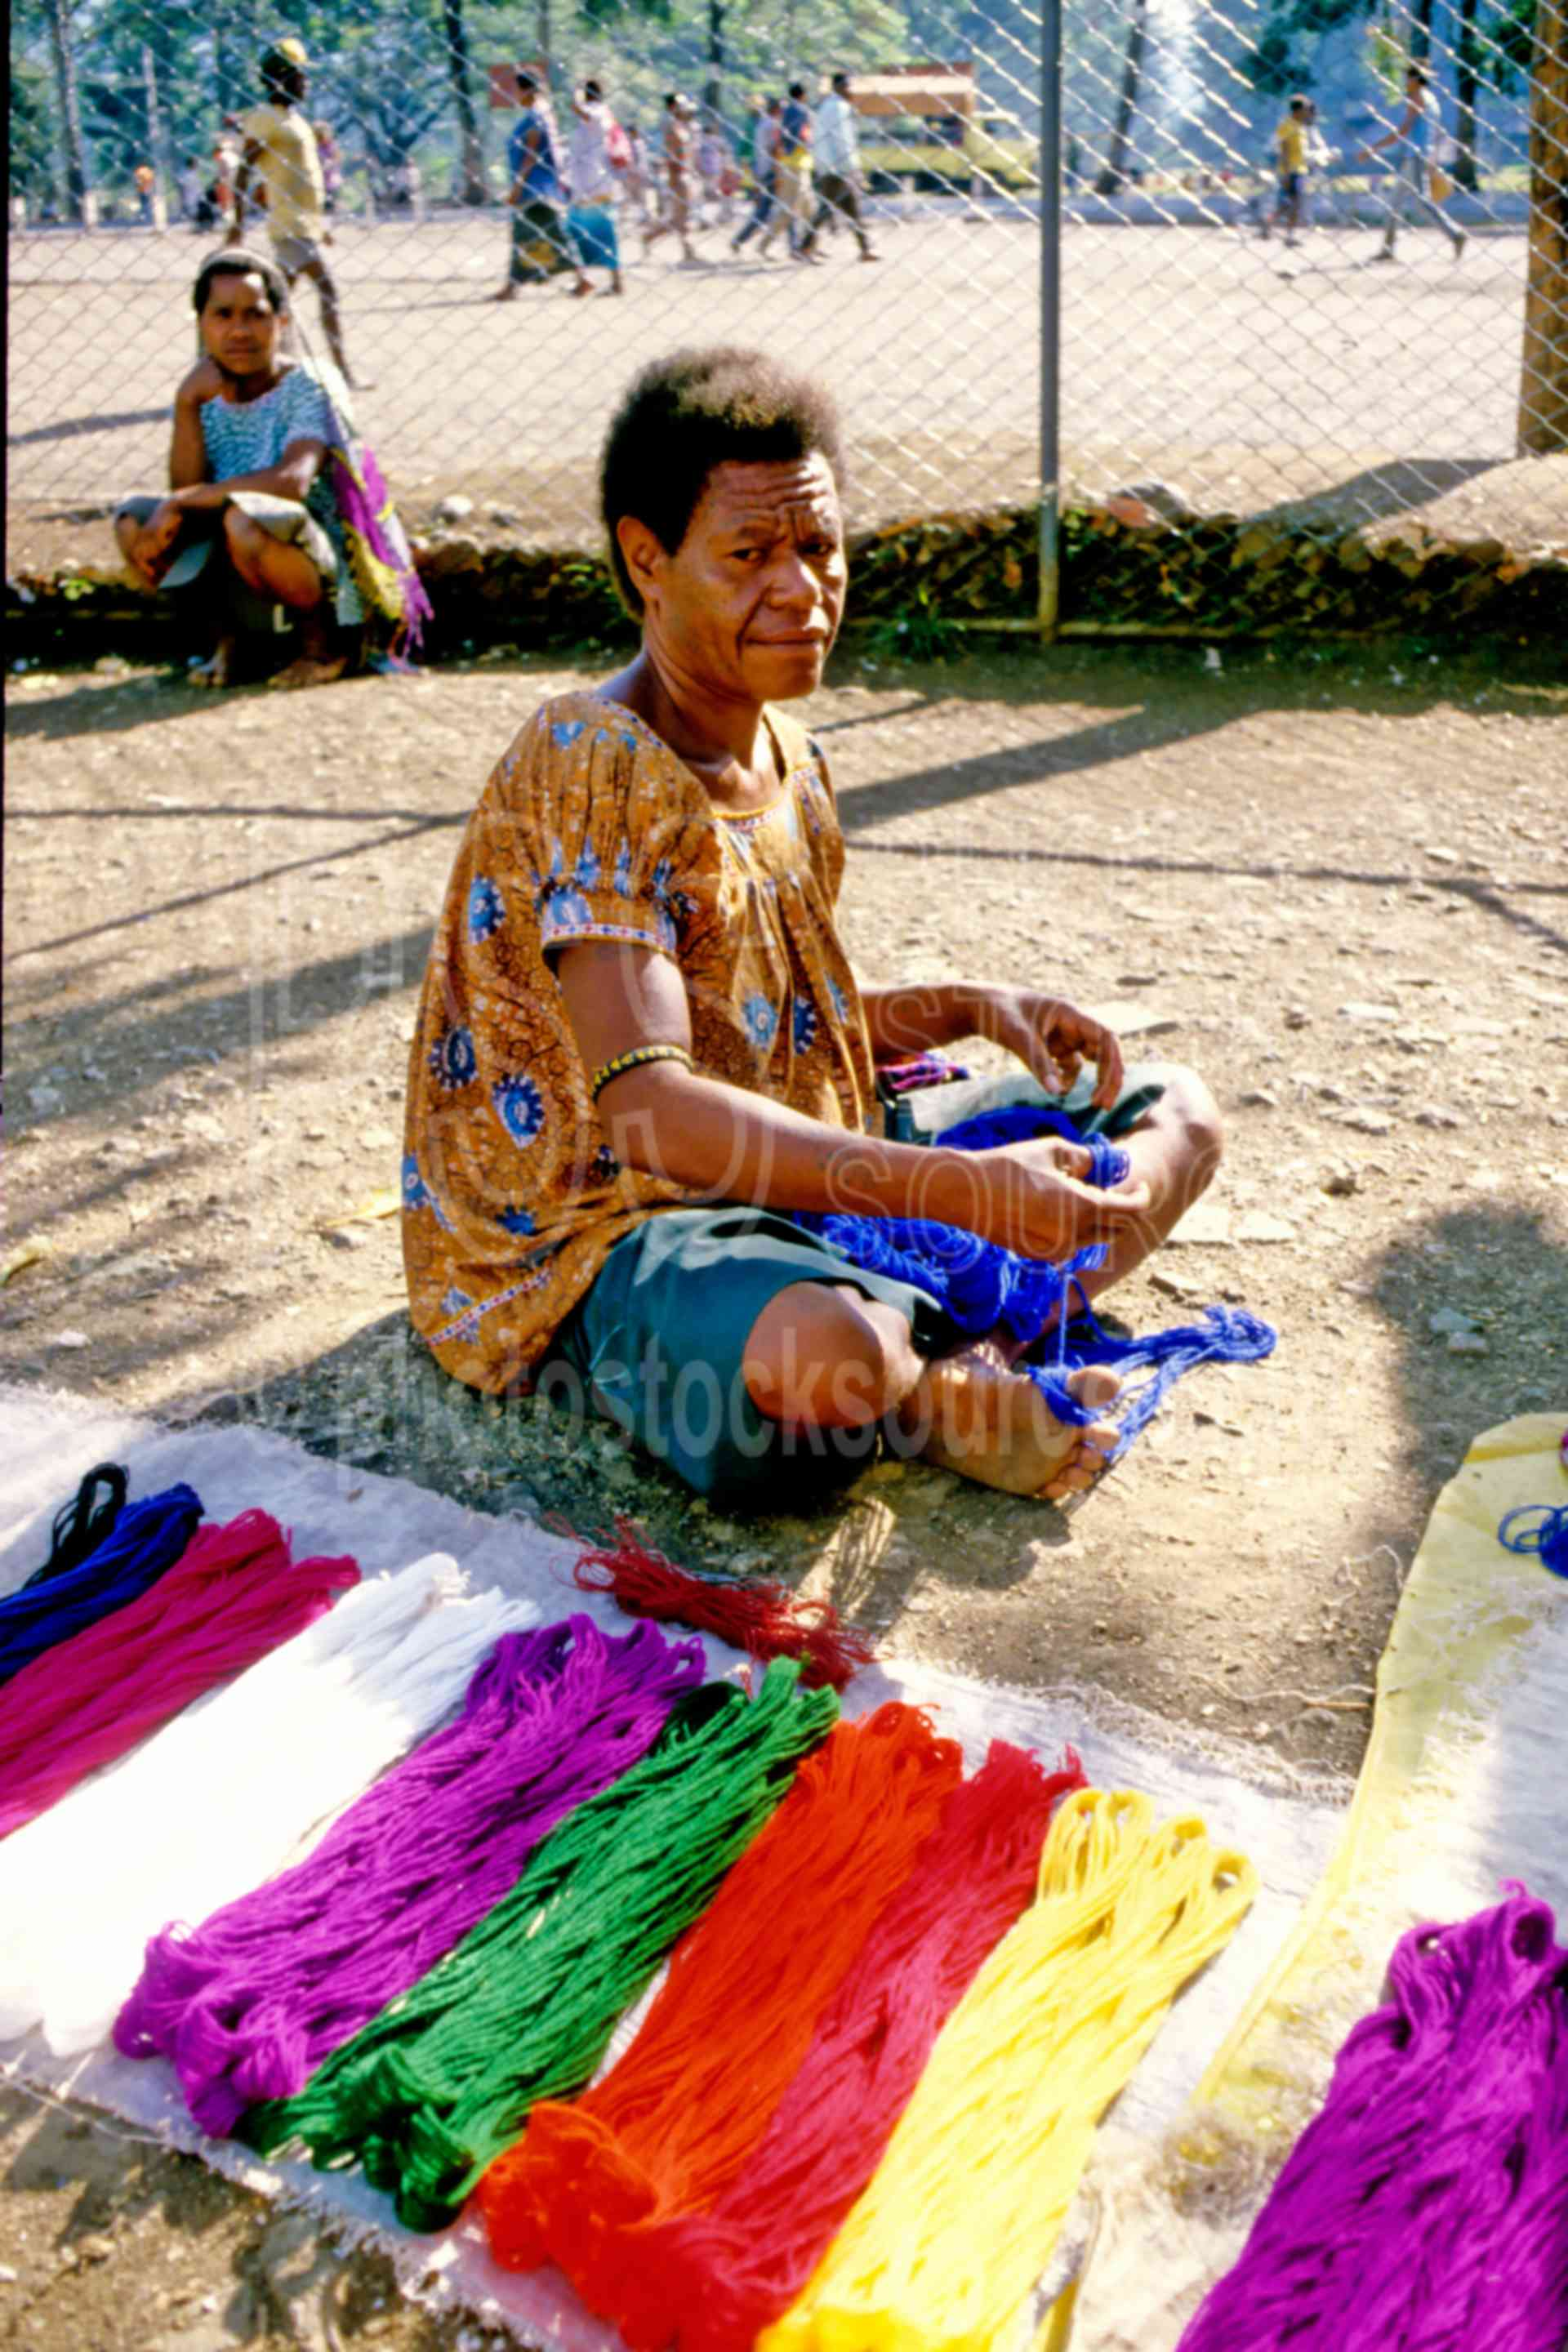 Yarn Seller,color,market,sell,seller,woman,yarn,png markets